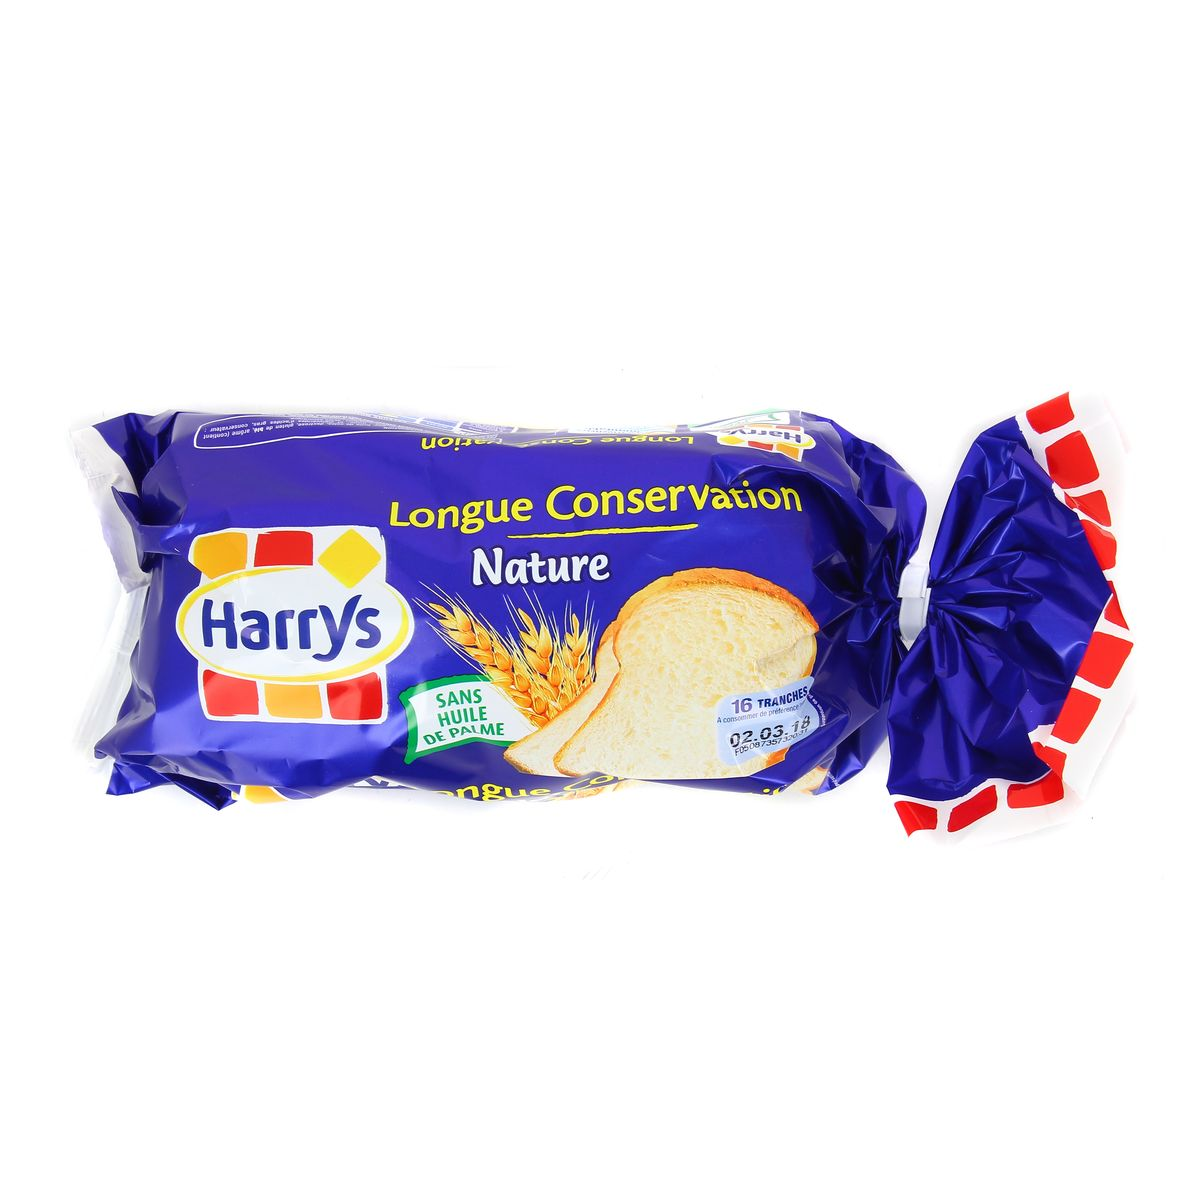 Pain de mie longue conservation, Harry's (250 g)